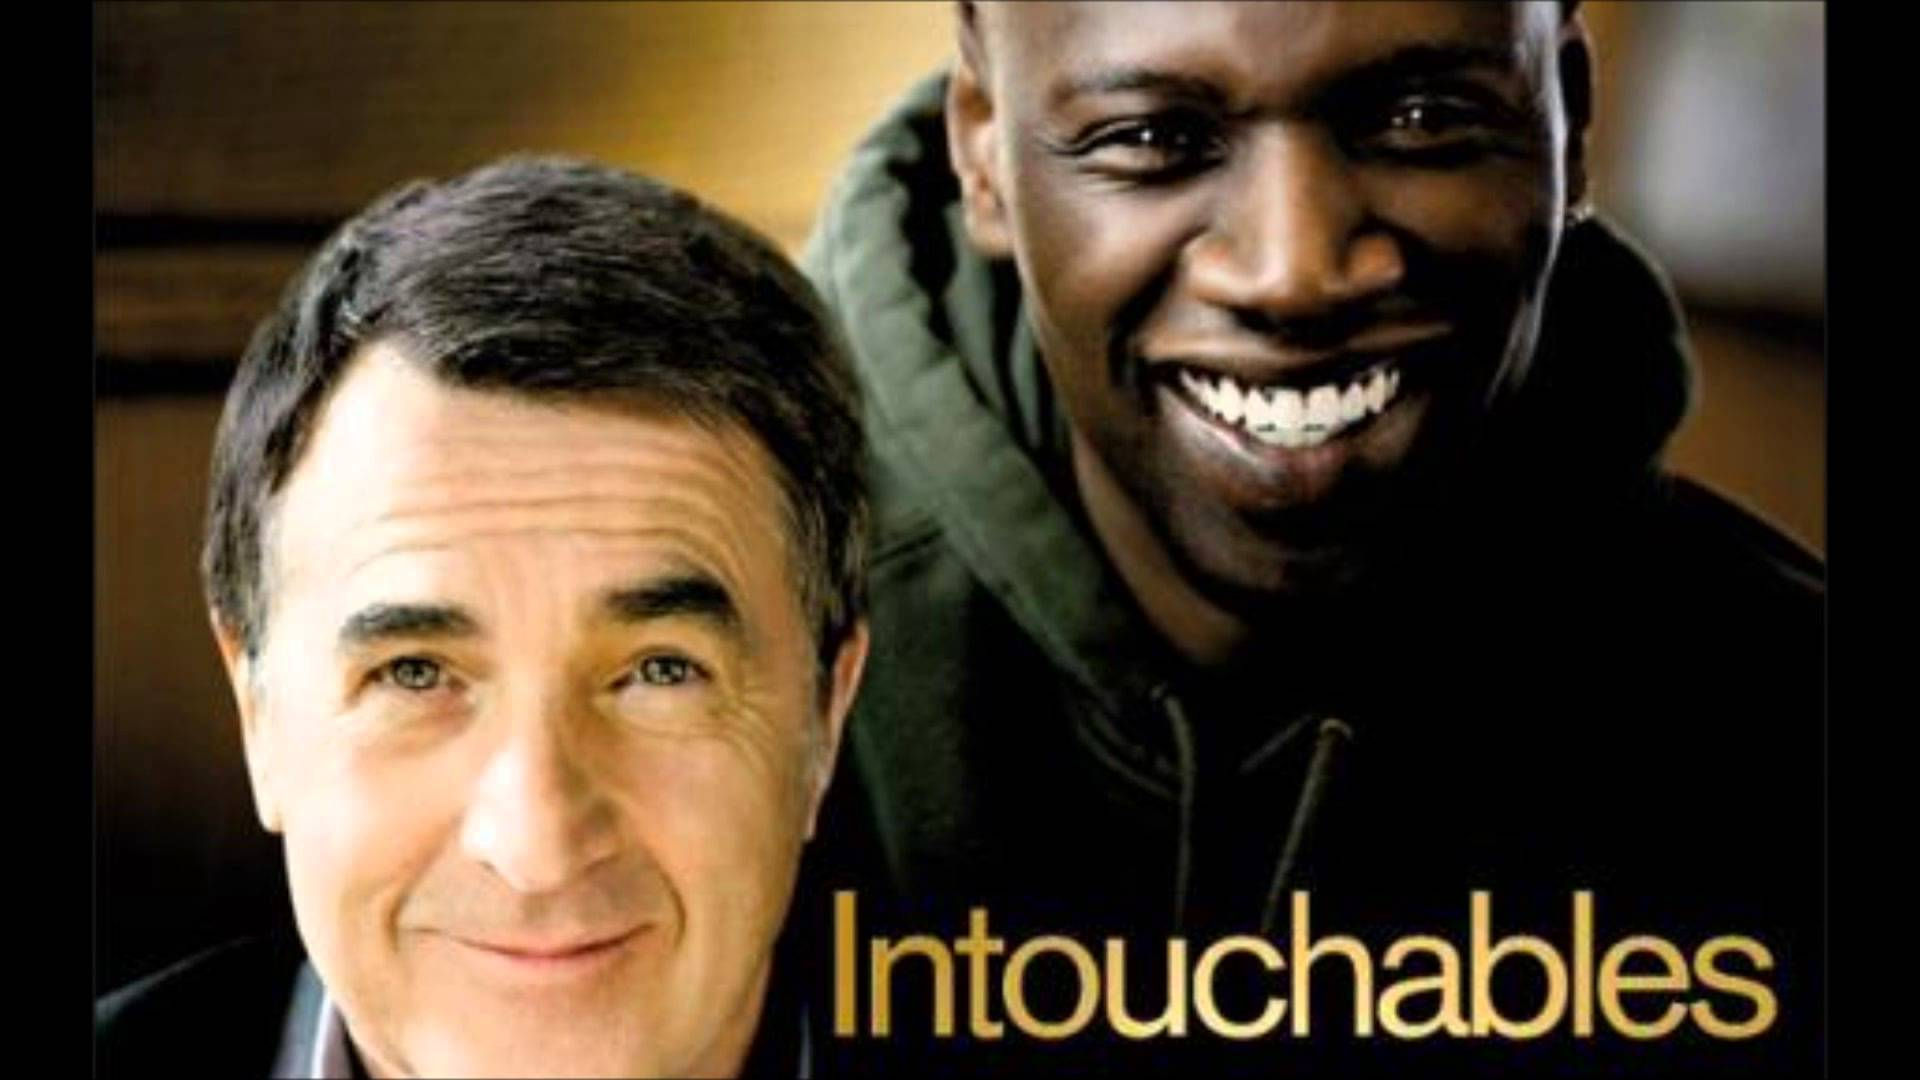 The Intouchables Wallpapers